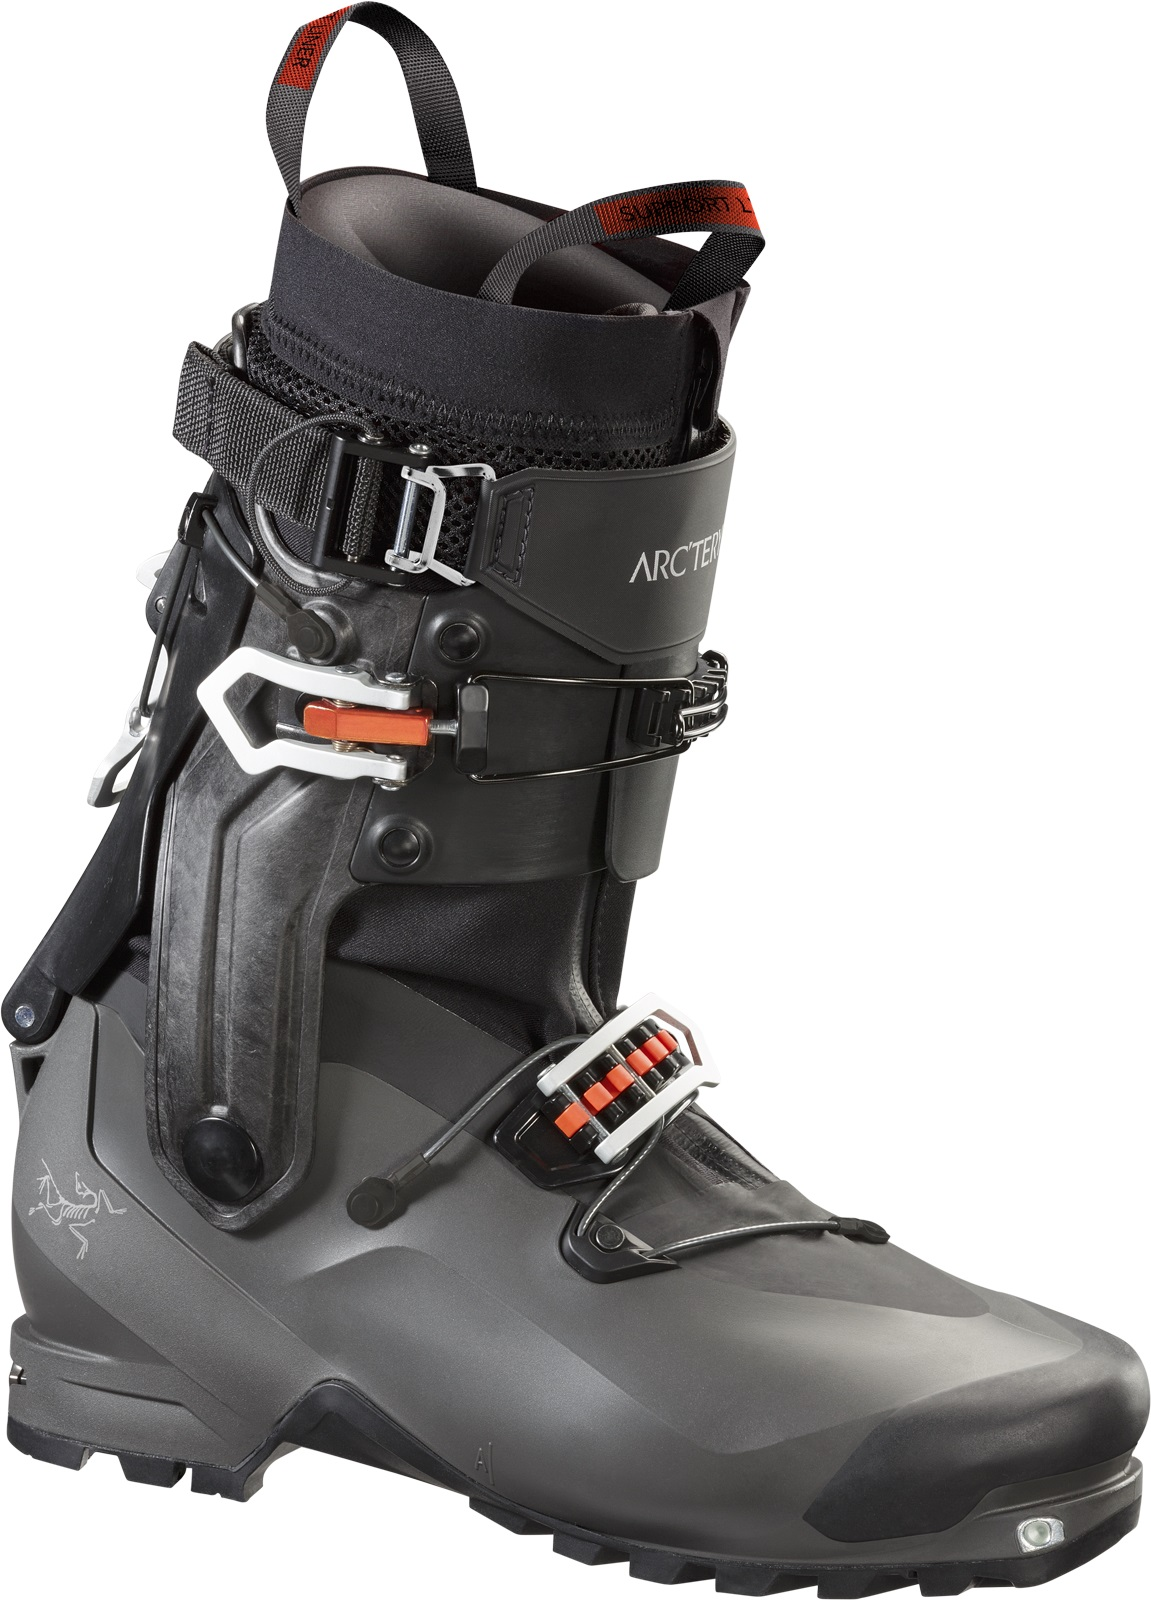 Procline Lite Ski Mountaineering Boot Men's